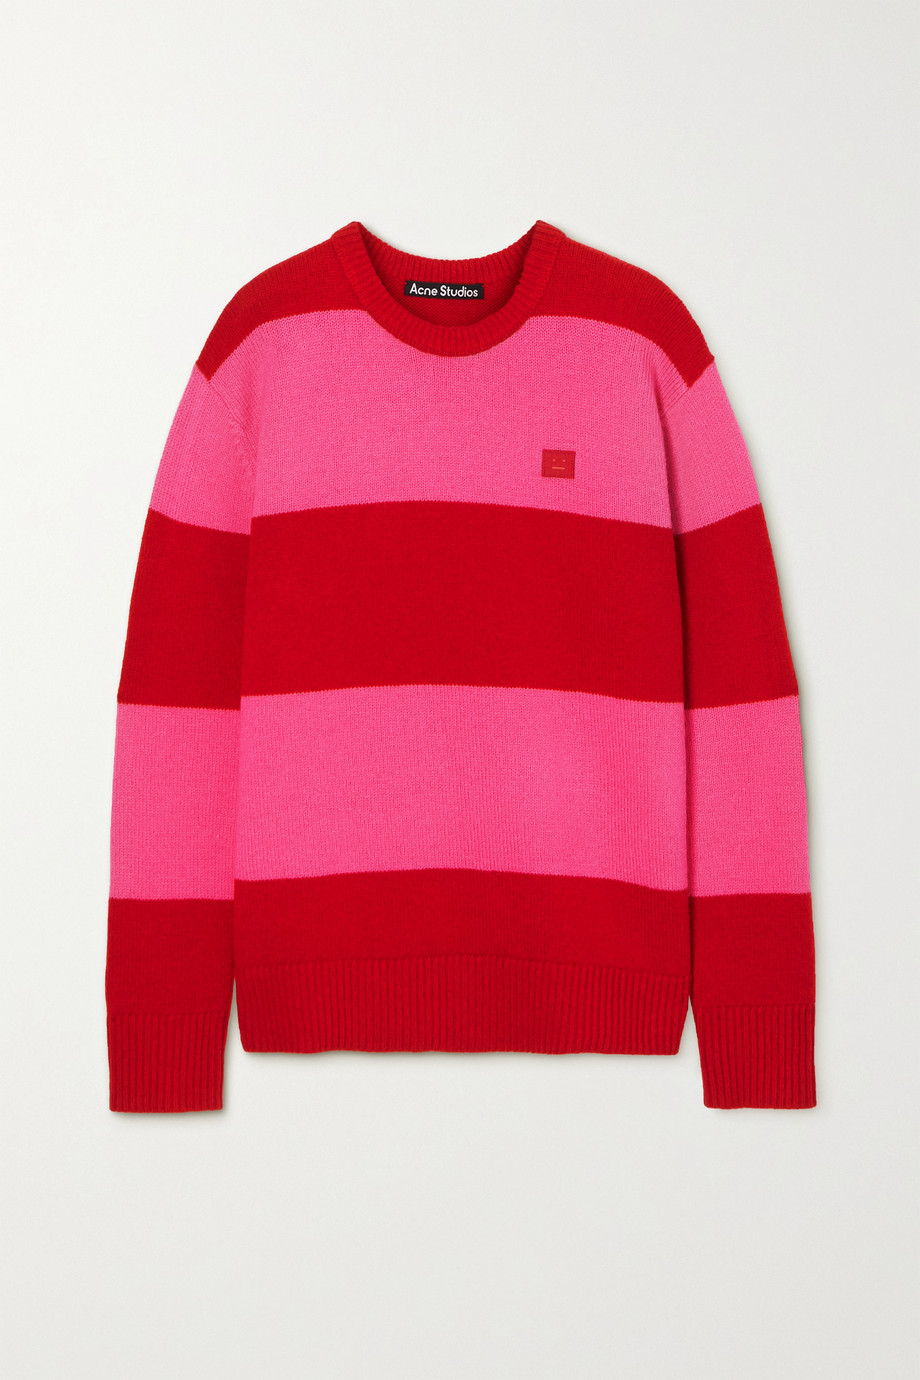 Acne Studios Gestreifter Oversized-Pullover aus Wolle mit Applikation